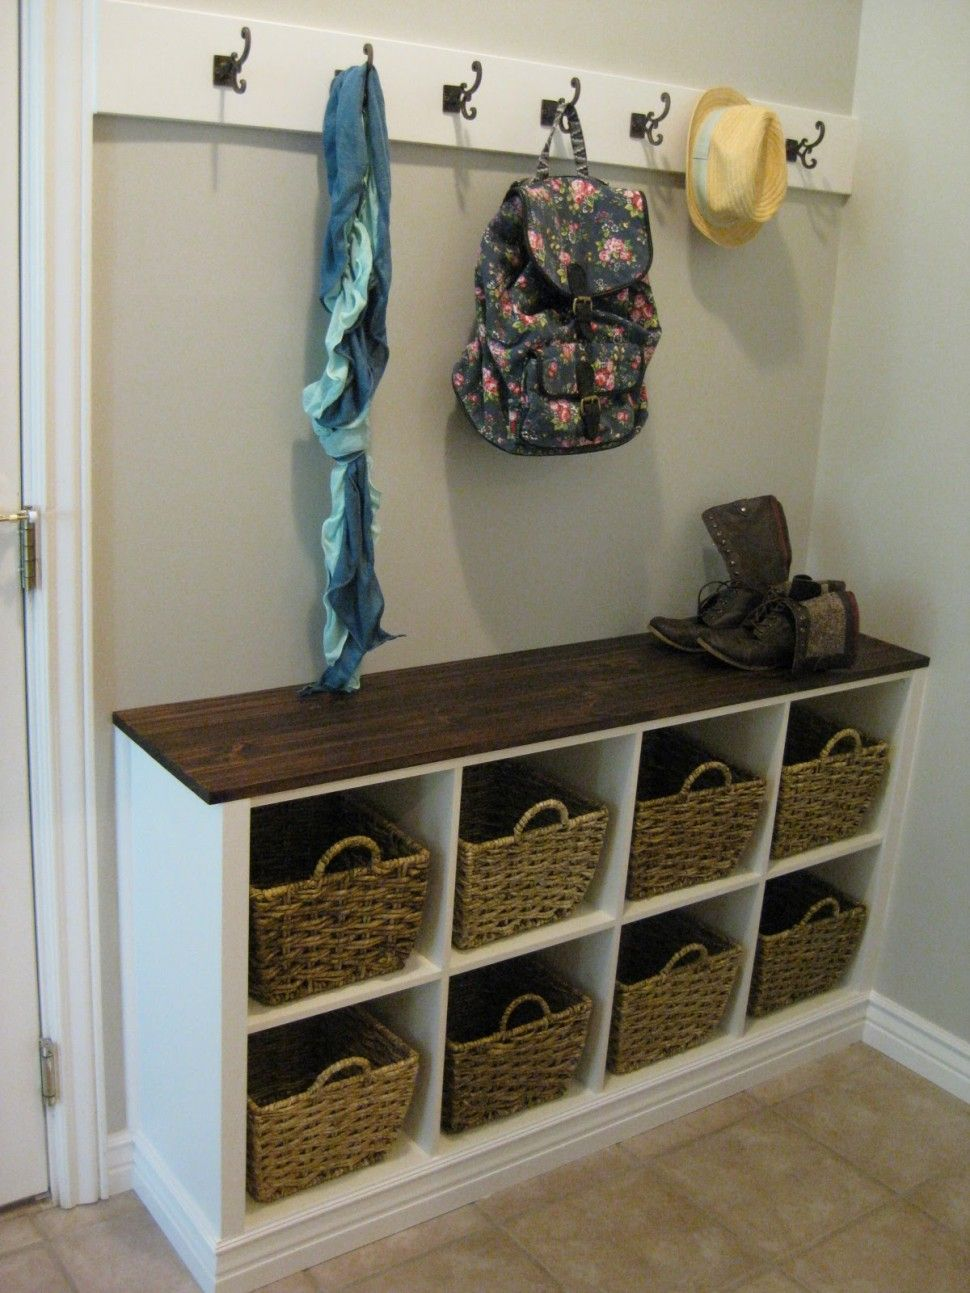 Decorations Cool Corner Bench Wicker Basket Storage With White Coat Hook Decor Ideas Coat Hooks With Storage Cheap Home Decor Home Organization Easy Home Decor